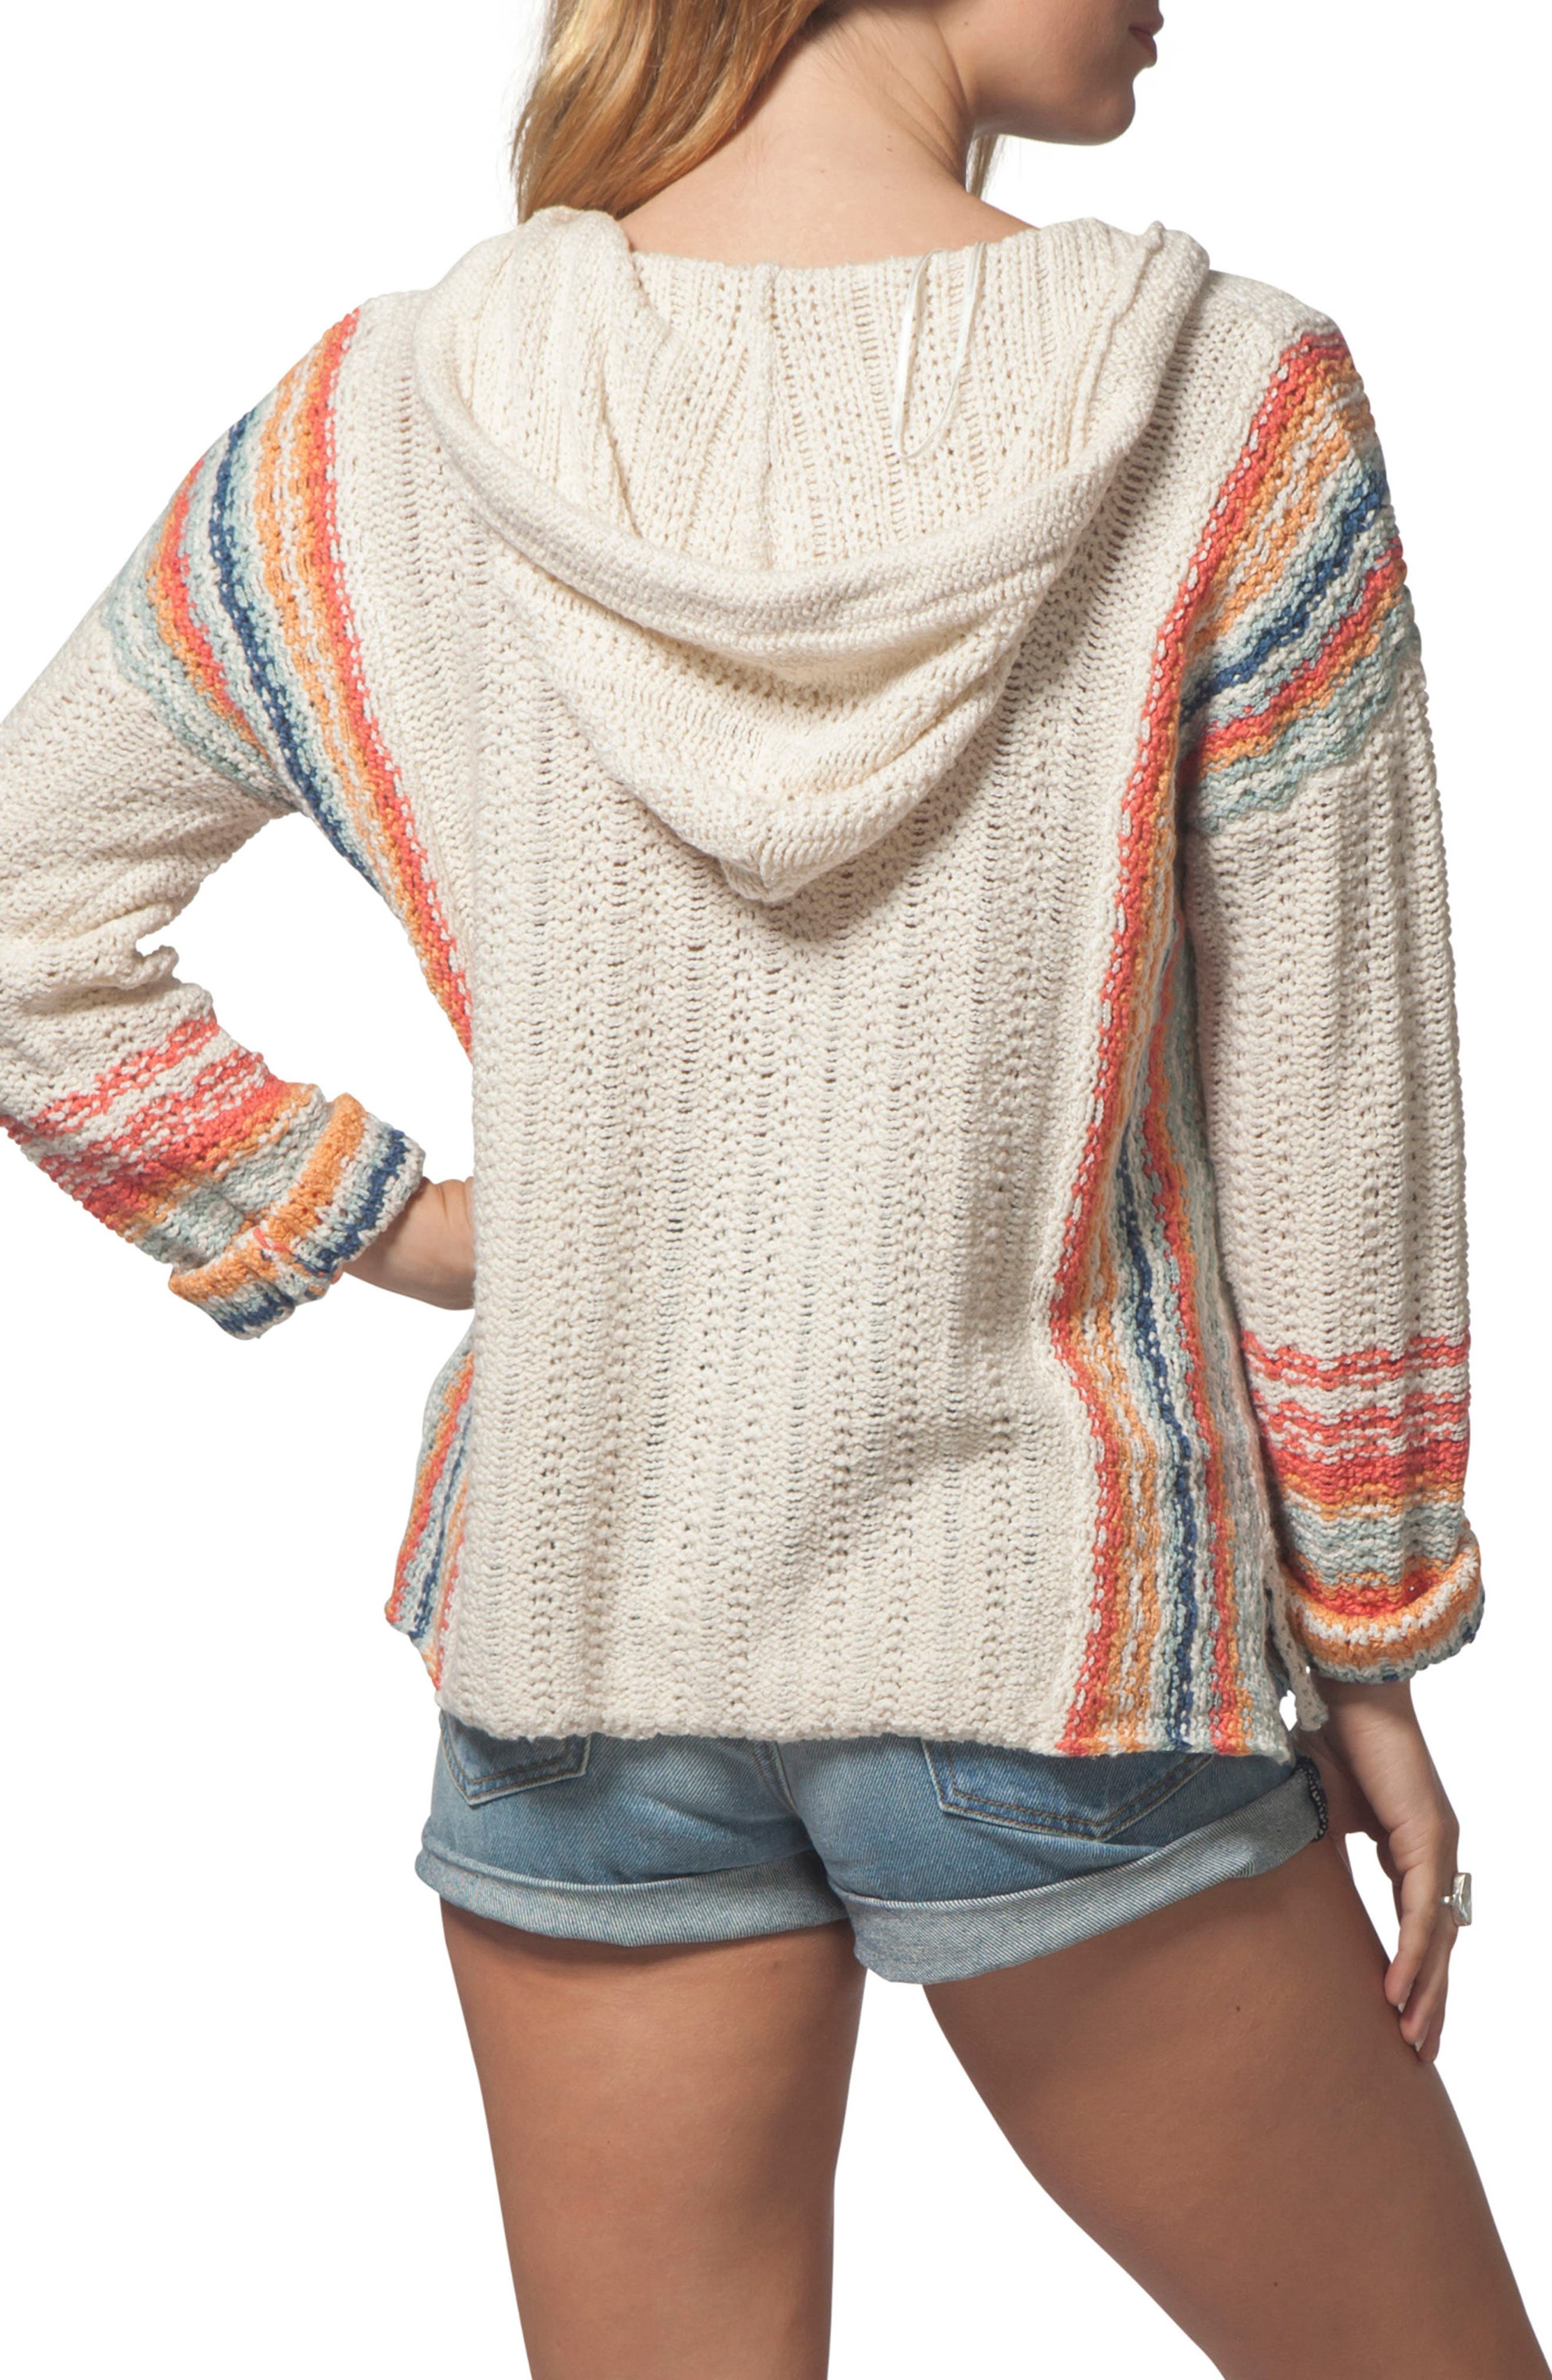 Sedona Hooded Knit Pullover,                             Alternate thumbnail 2, color,                             250